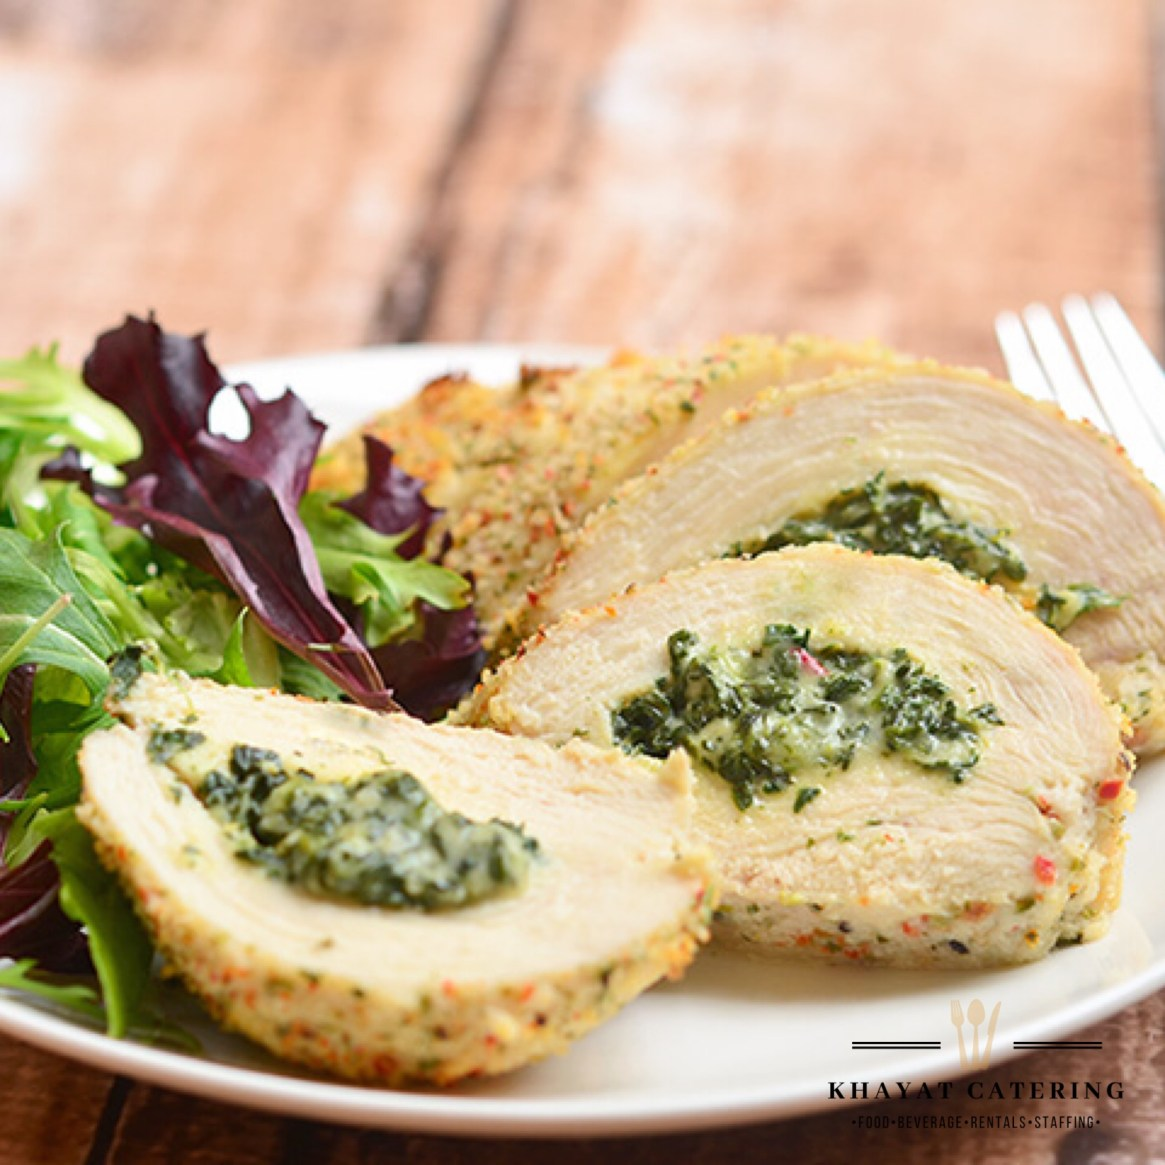 Khayat Catering stuffed Chicken Florentine